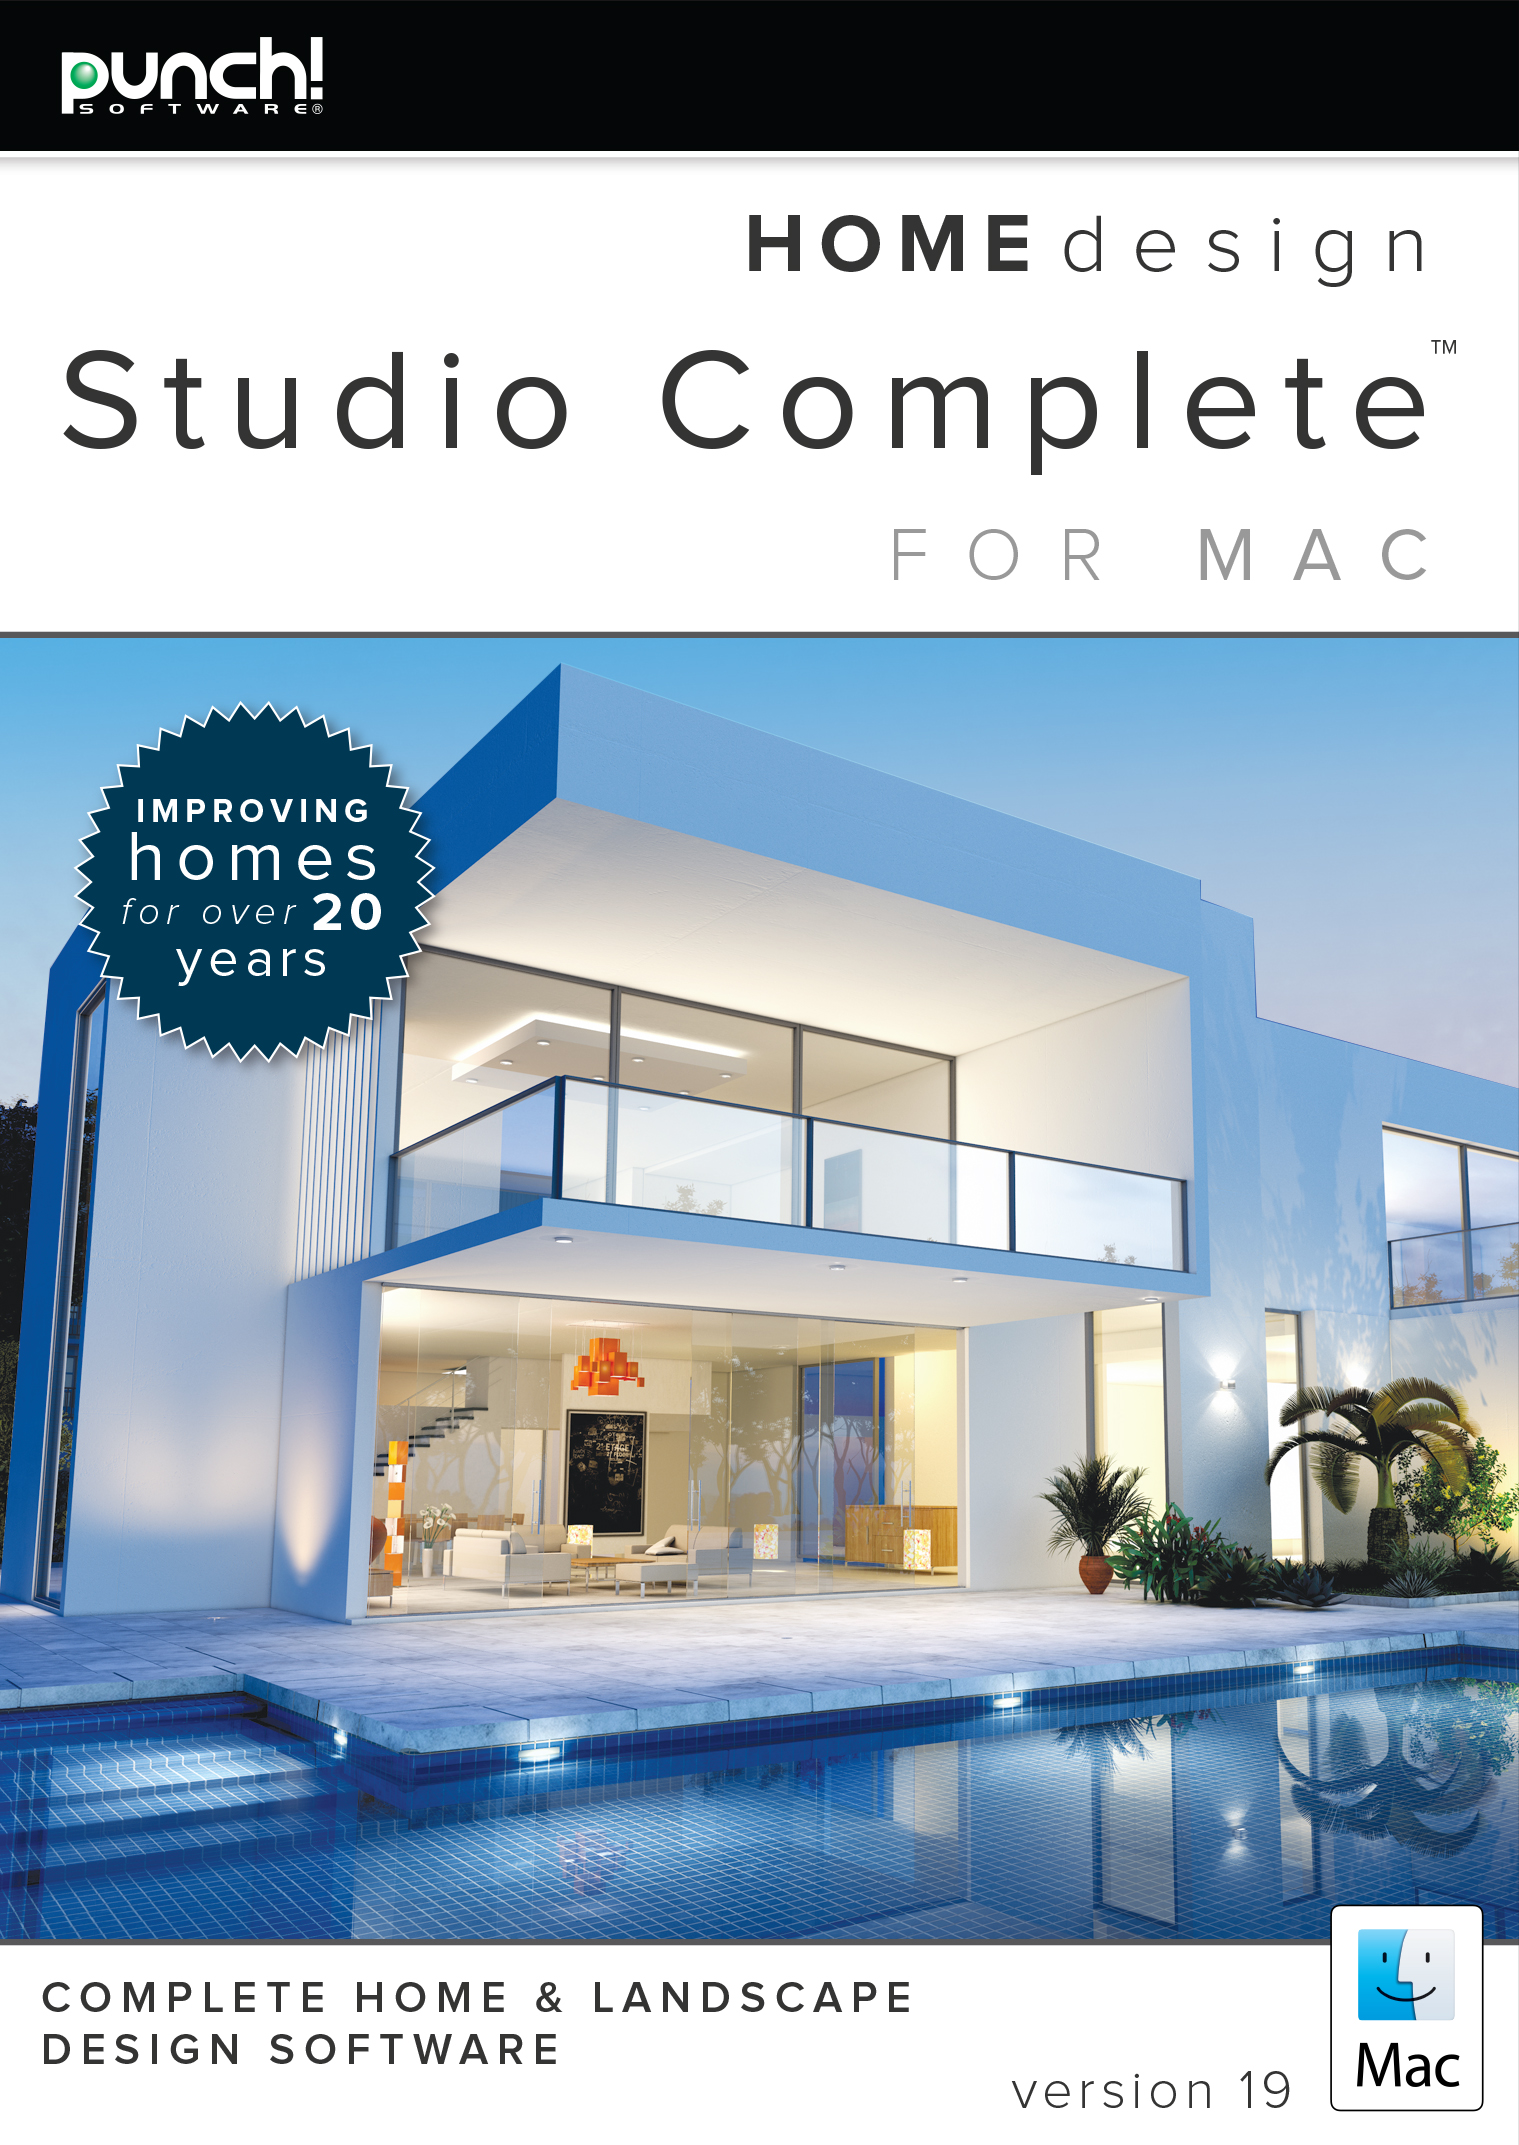 (Punch! Home Design Studio Complete for Mac v19 [Download])